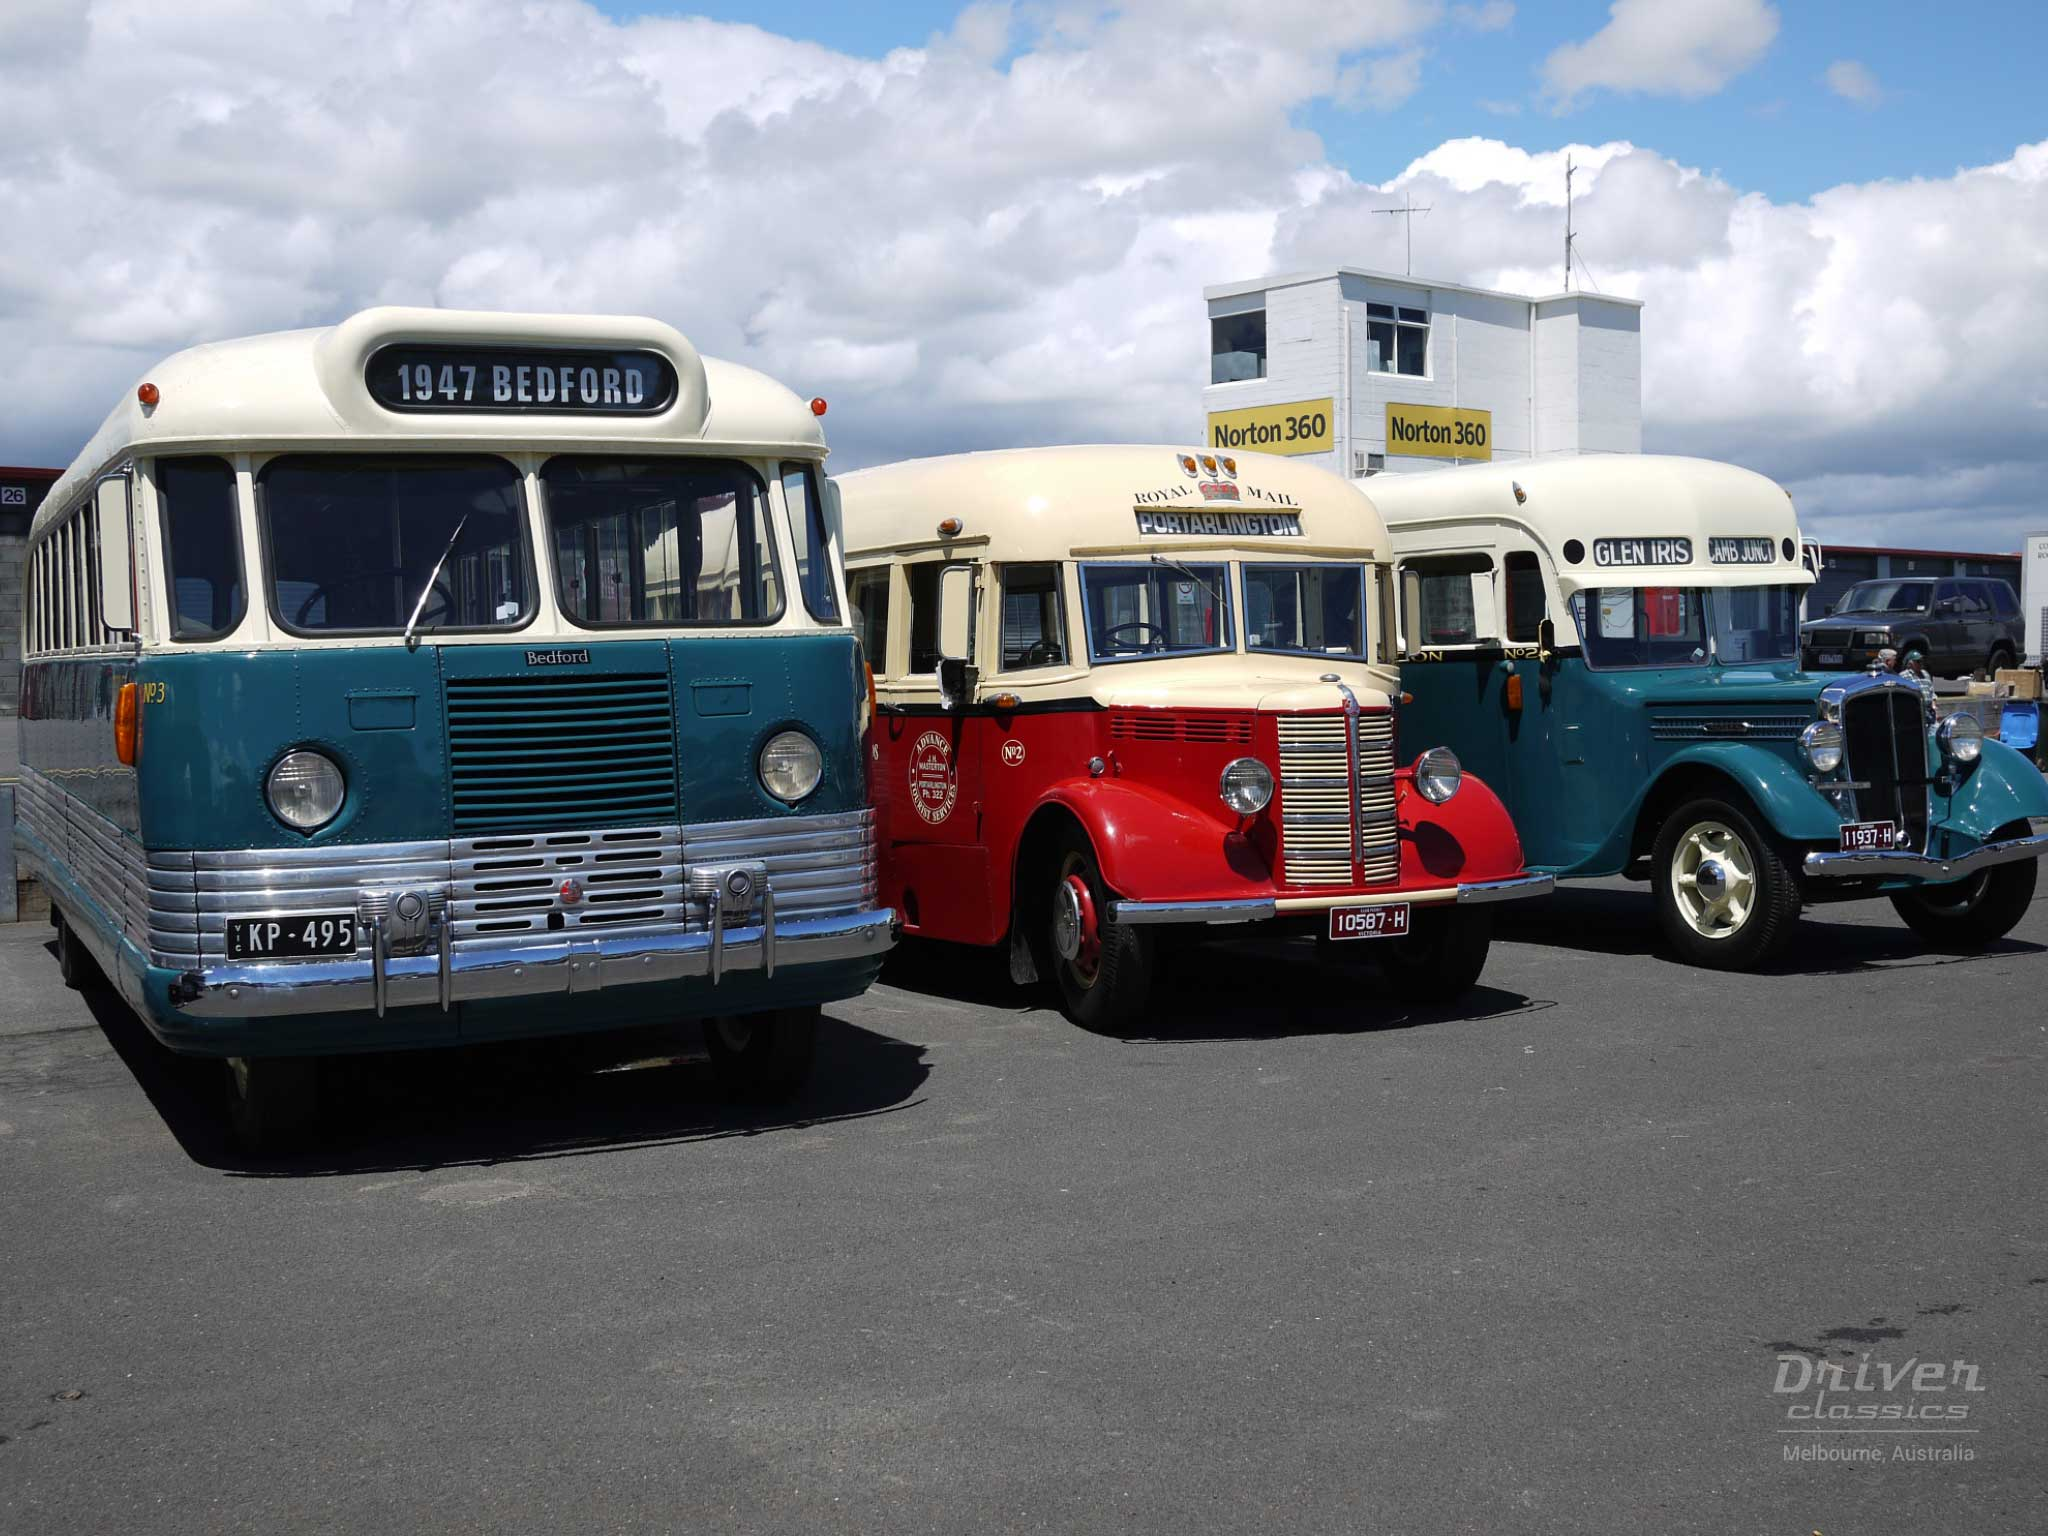 1946 Bedford OB / Grice, with 1947 Bedford OB and 1936 Federal buses